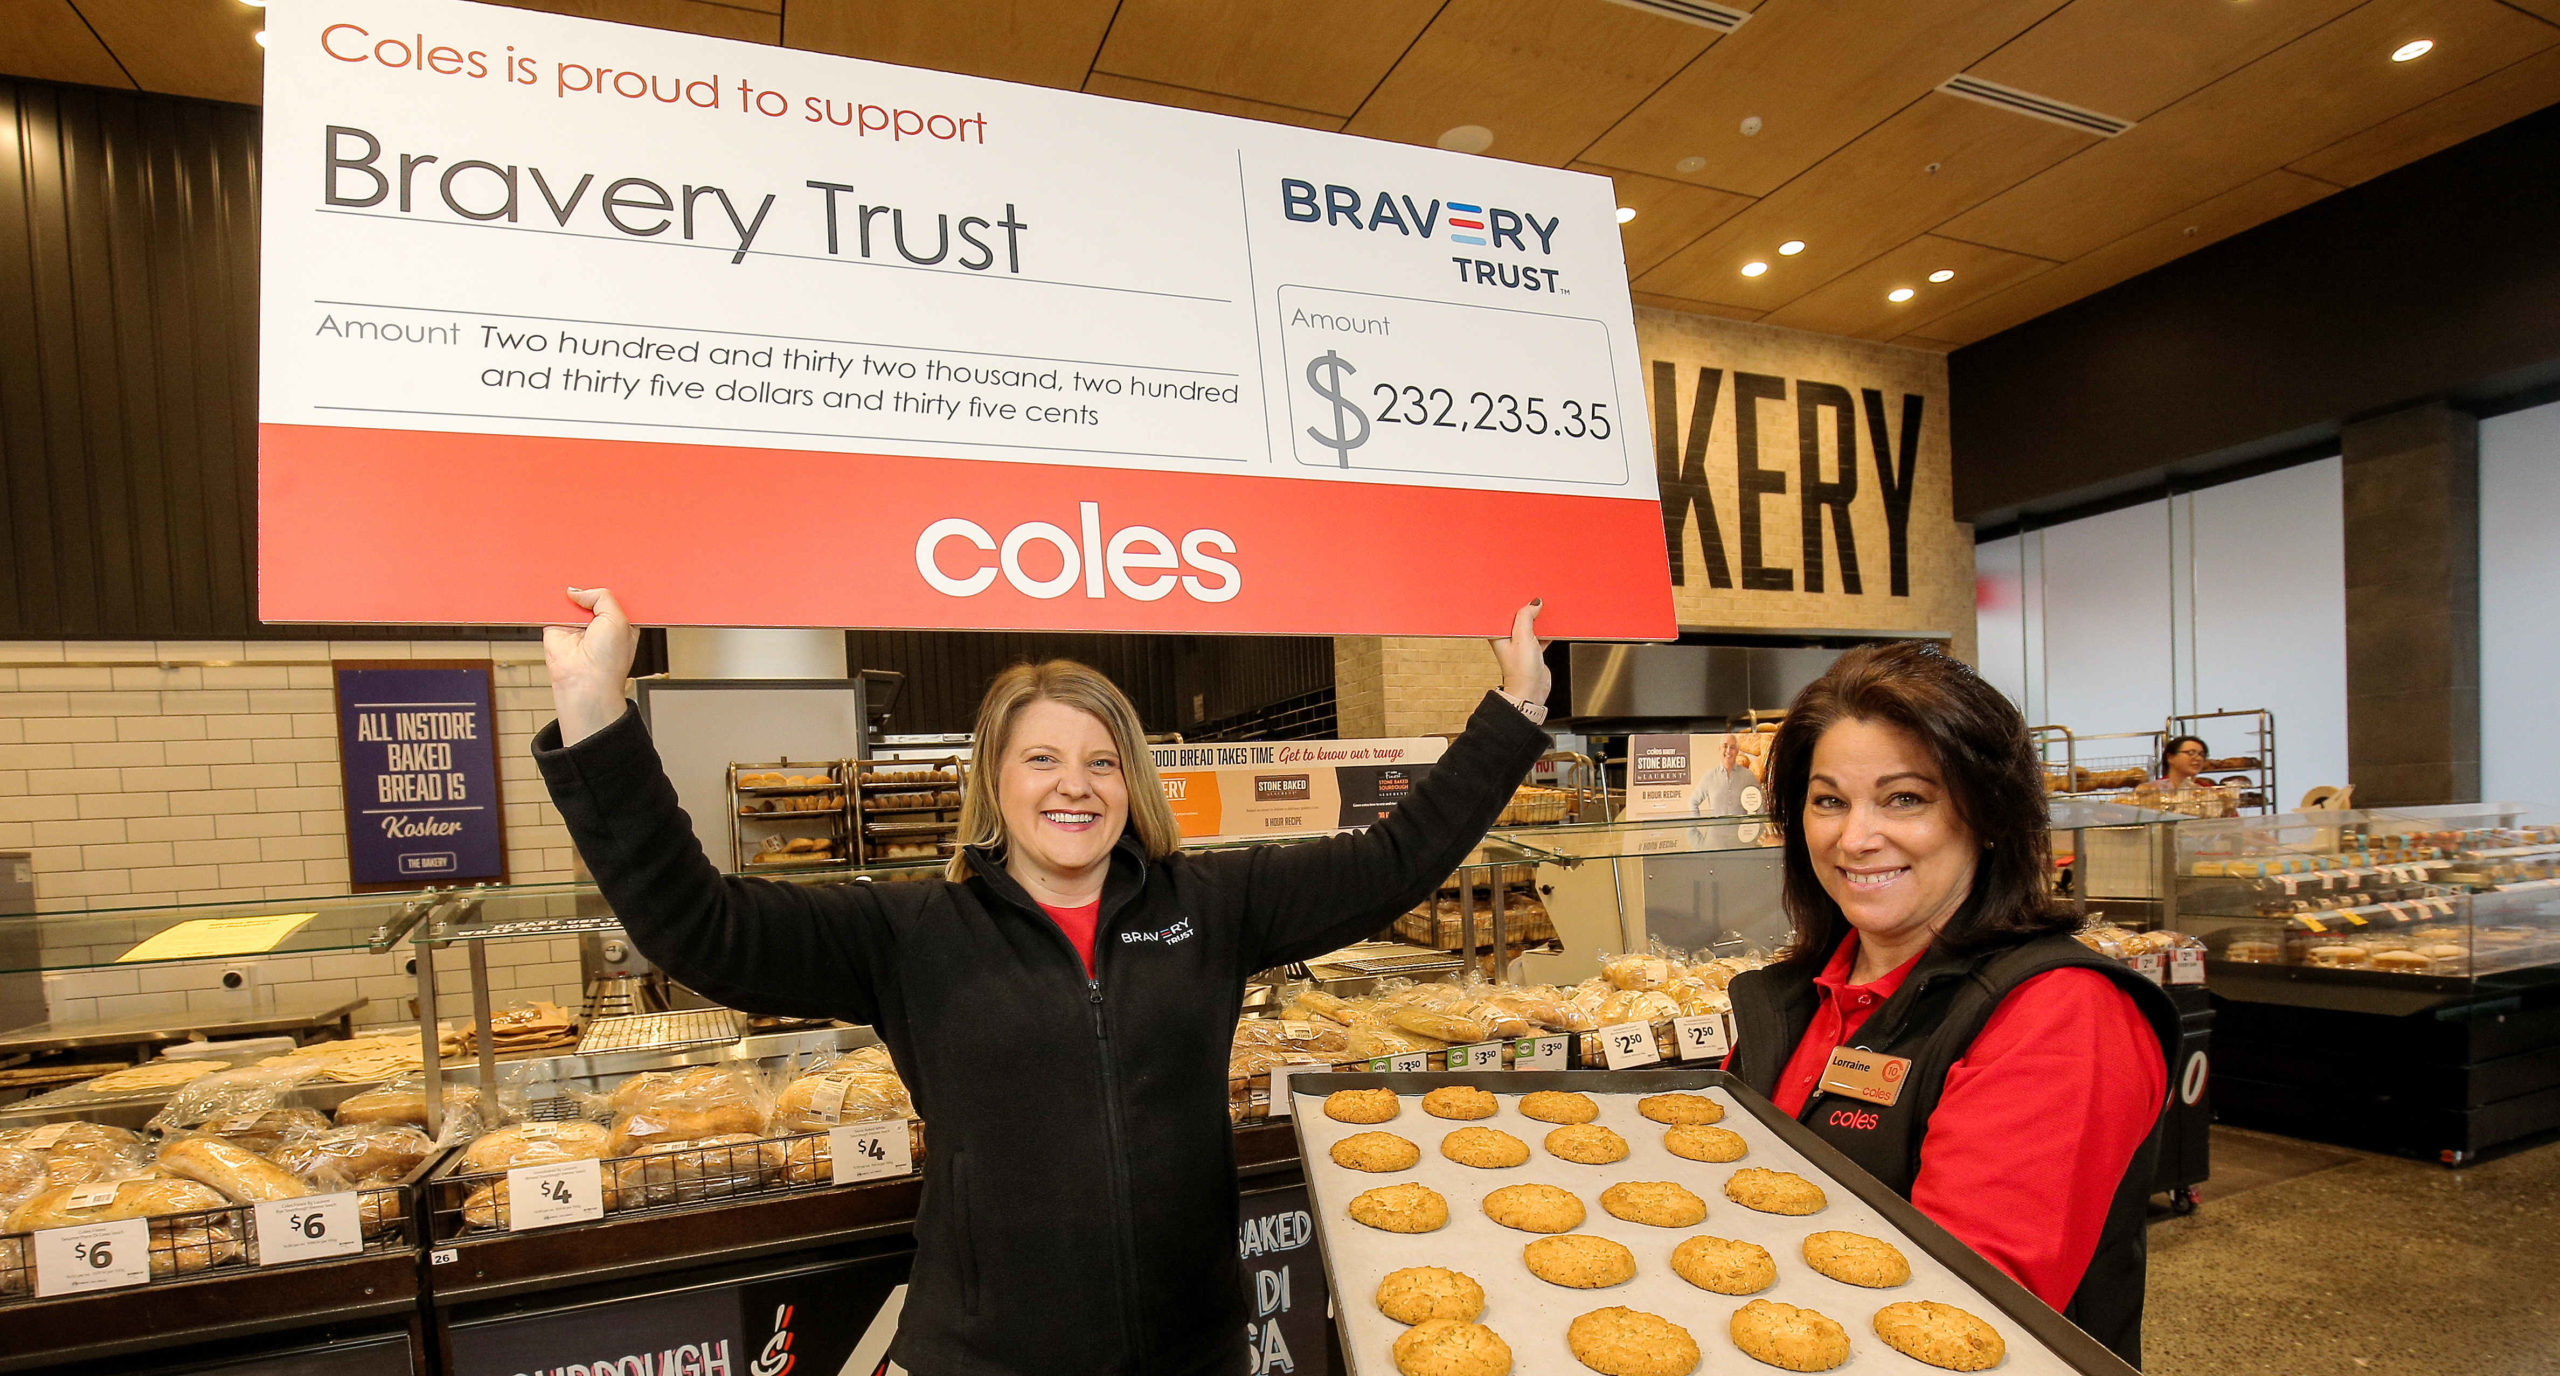 Aussies raise $232,000 in collaboration with Bravery Trust and Coles supermarkets.